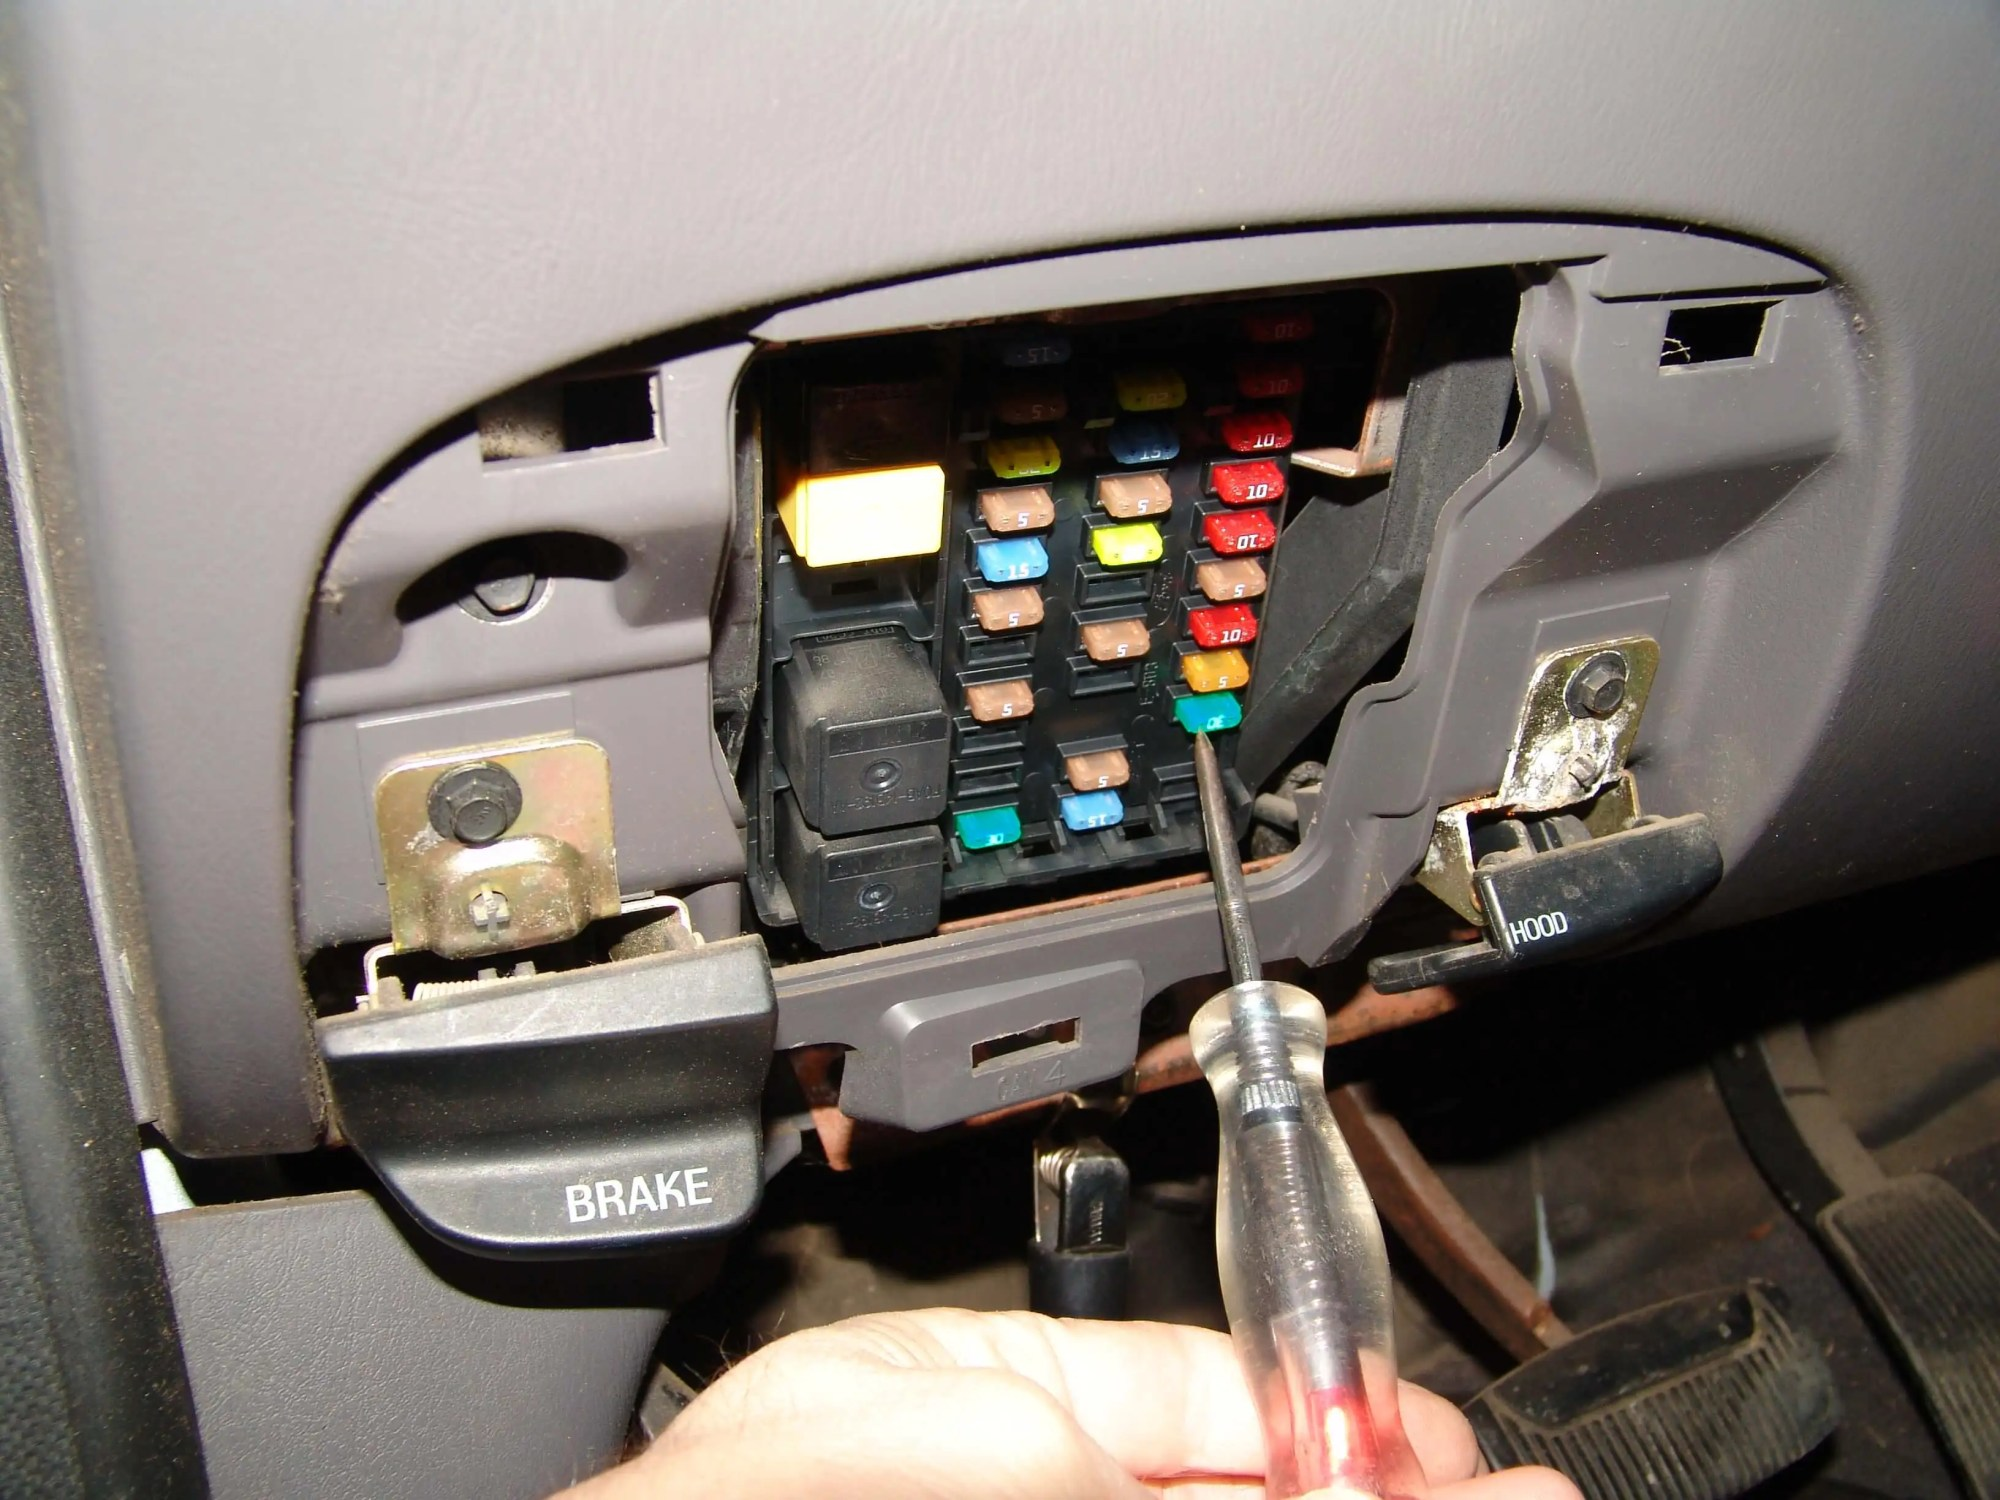 hight resolution of i also replaced the fuel pump relay at the same time since it will likely fail in the near future